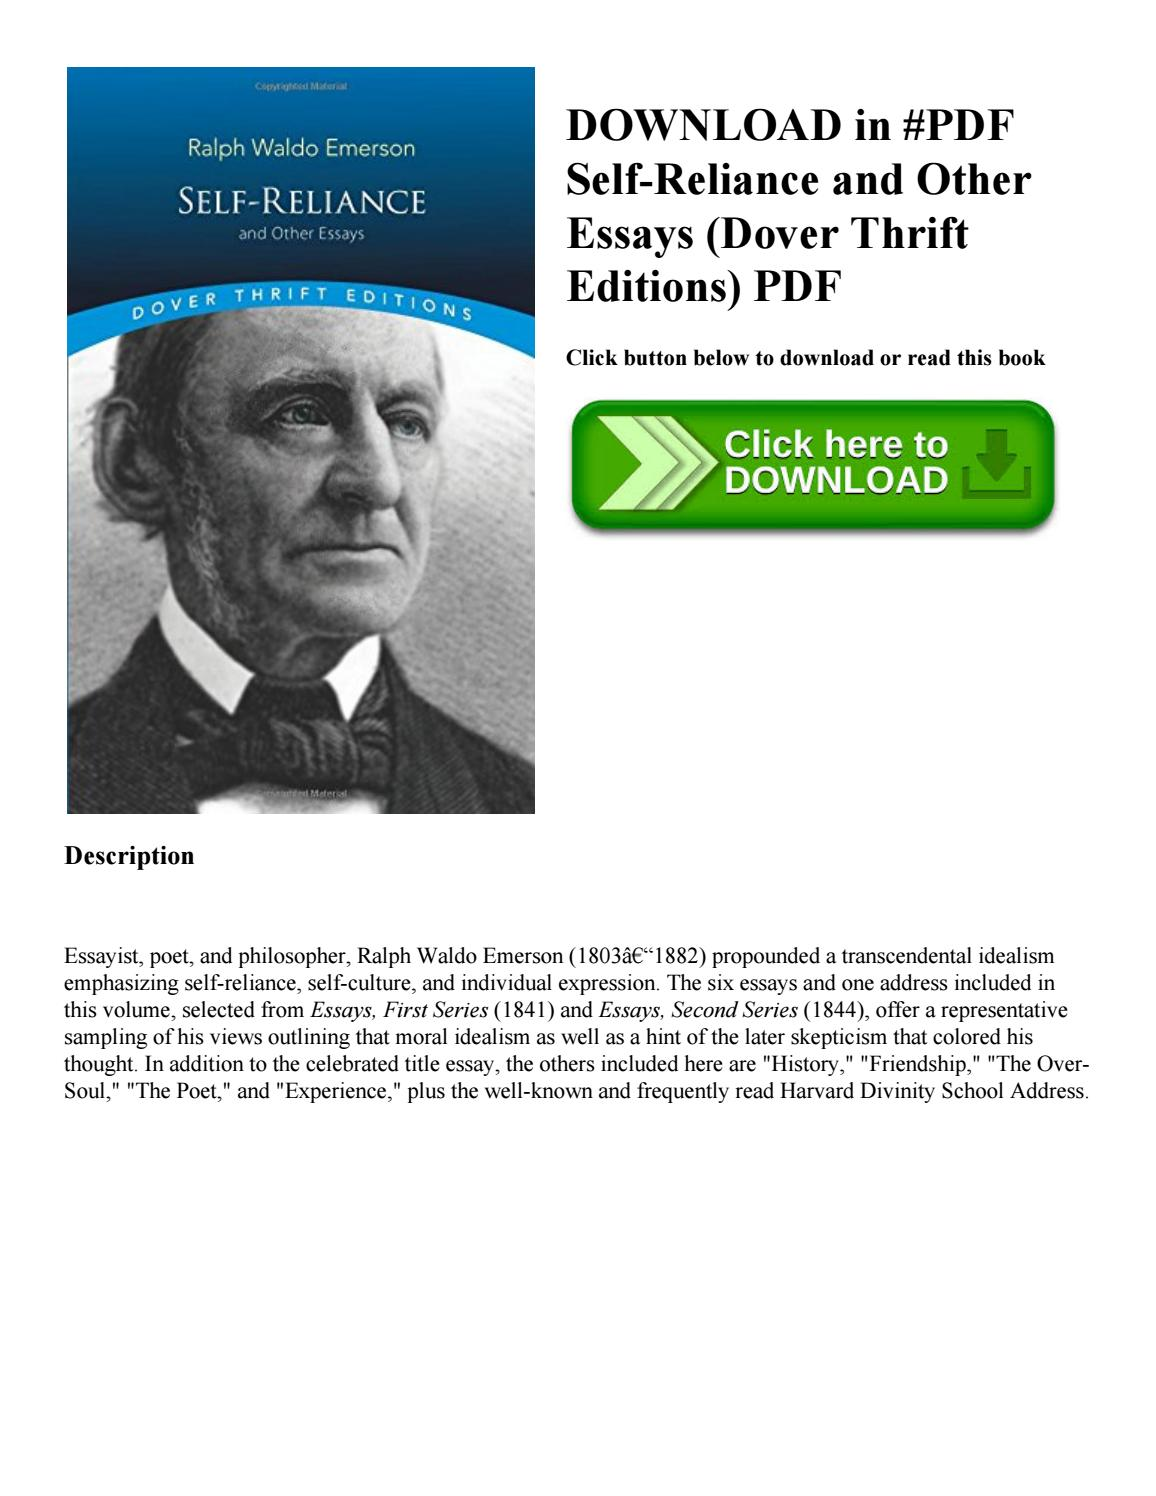 007 Page 1 Self Reliance And Other Essays Essay Formidable Ekşi Self-reliance (dover Thrift Editions) Pdf Epub Full